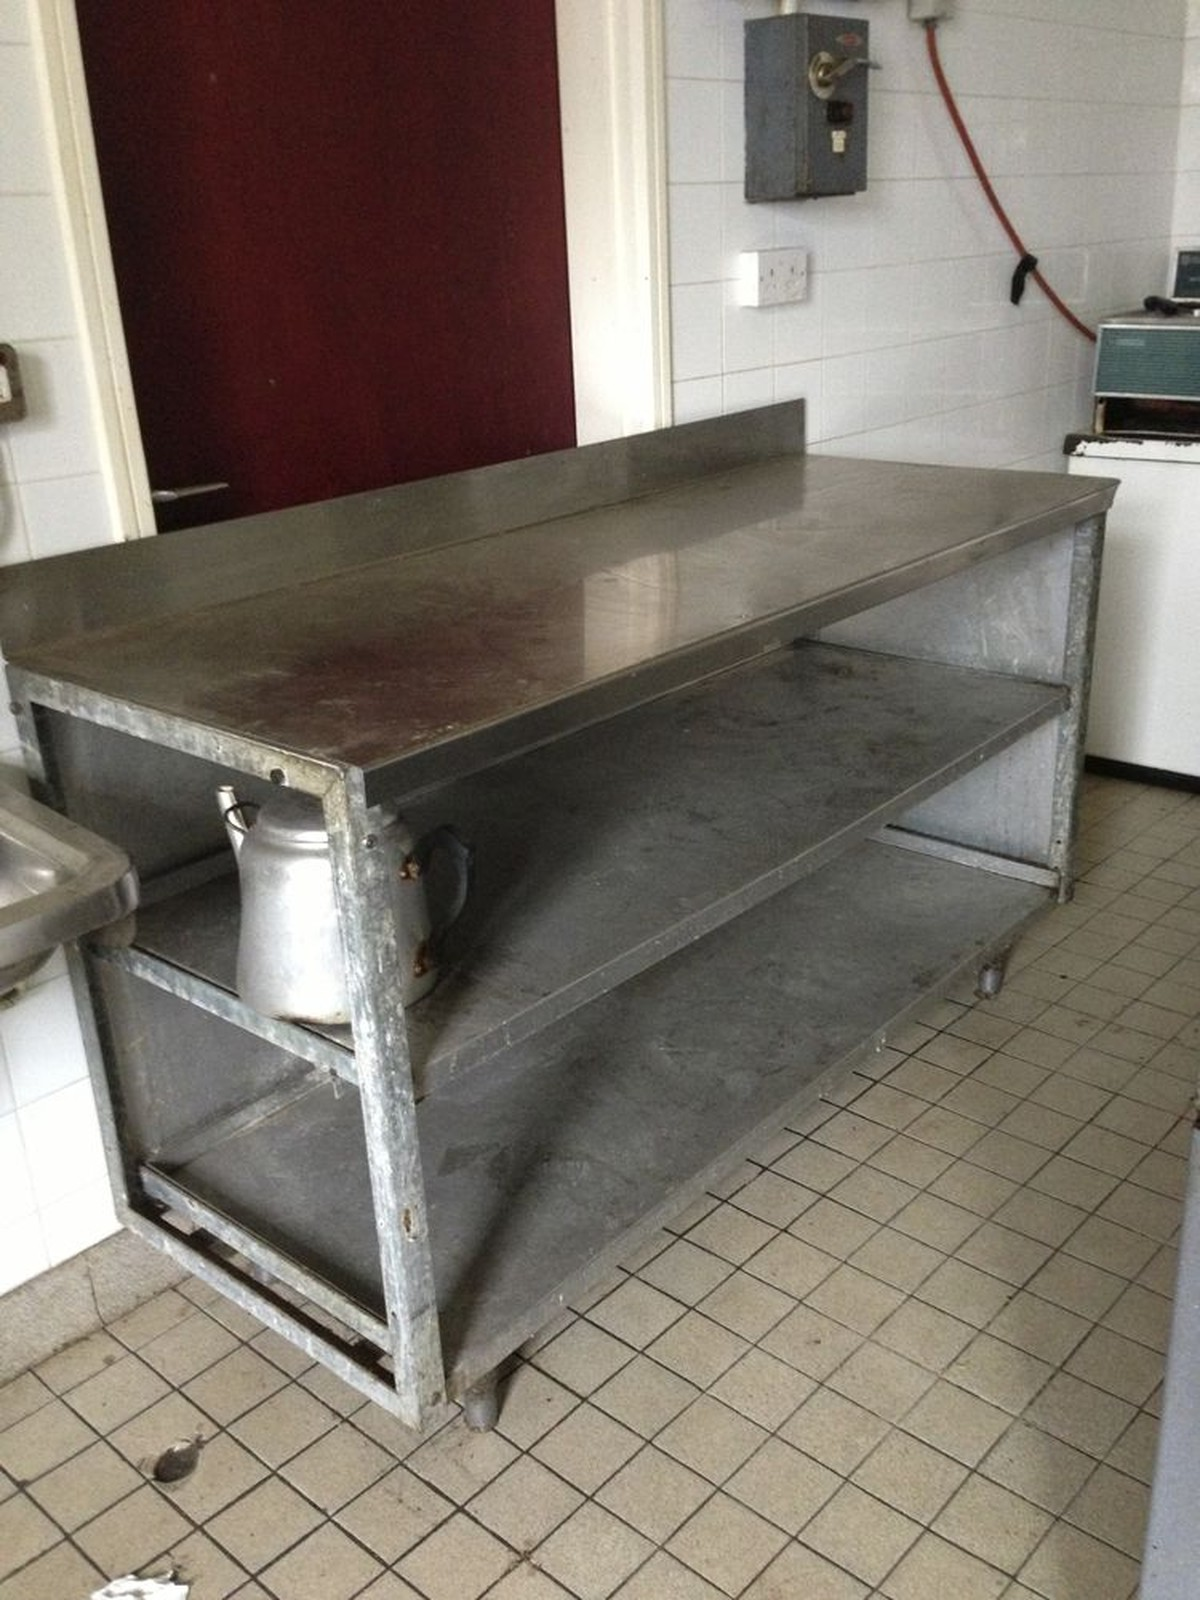 secondhand catering equipment stainless steel tables 1 01m to 2m